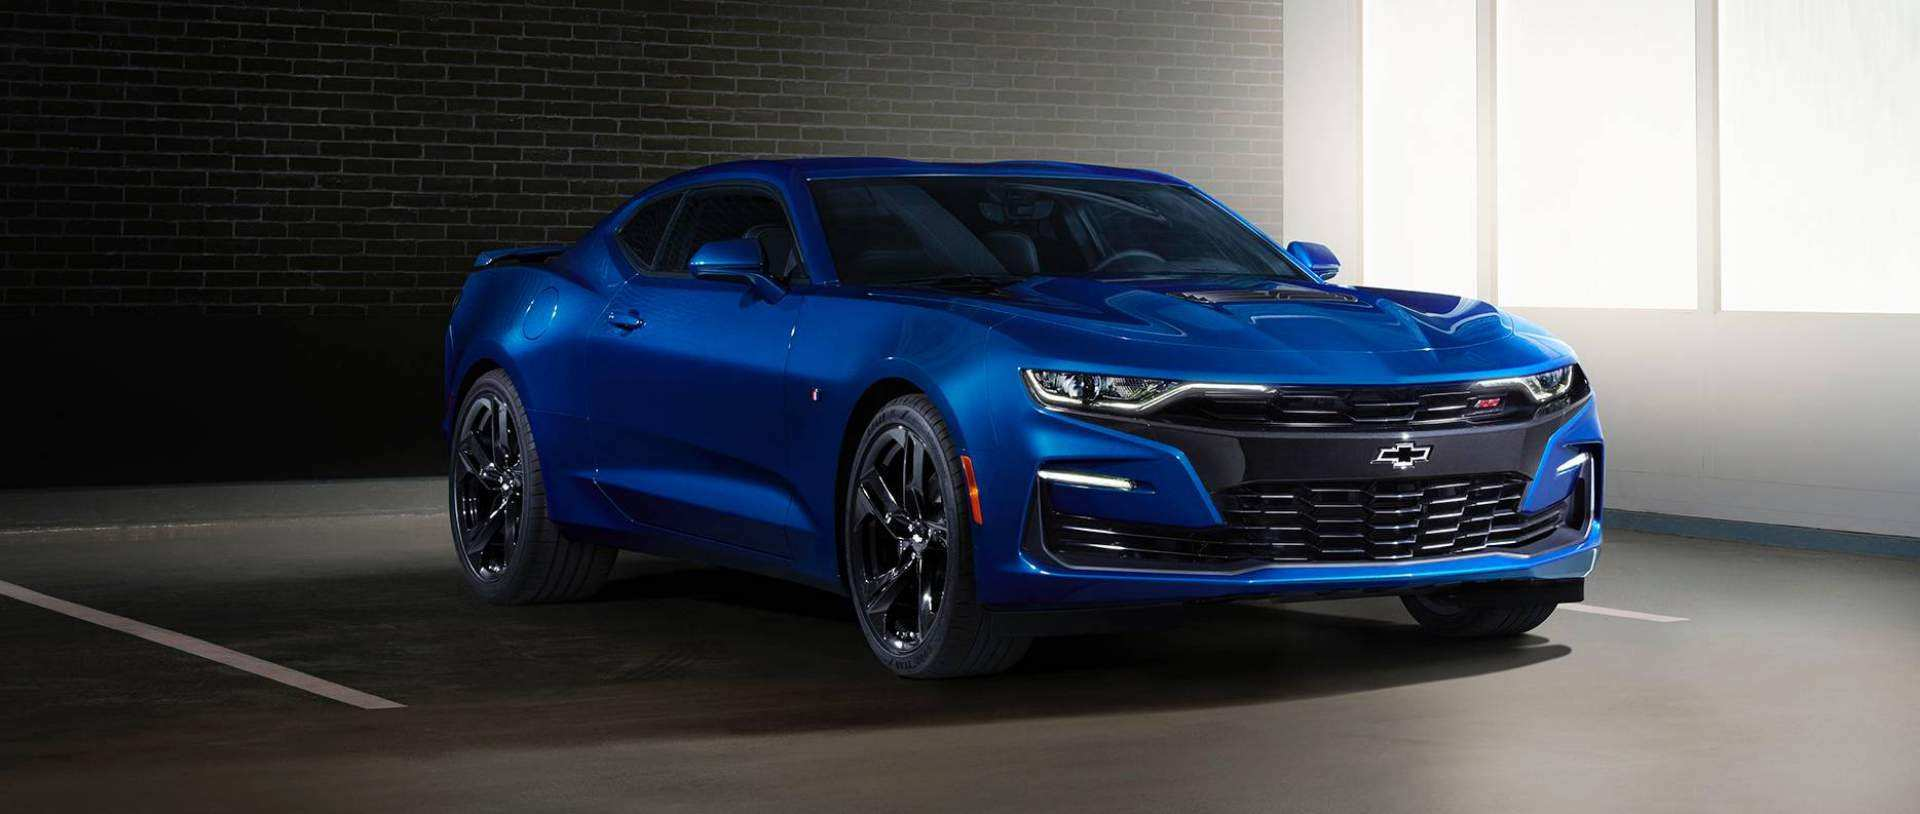 95 Great 2020 Chevrolet Camaro Ss Spesification for 2020 Chevrolet Camaro Ss